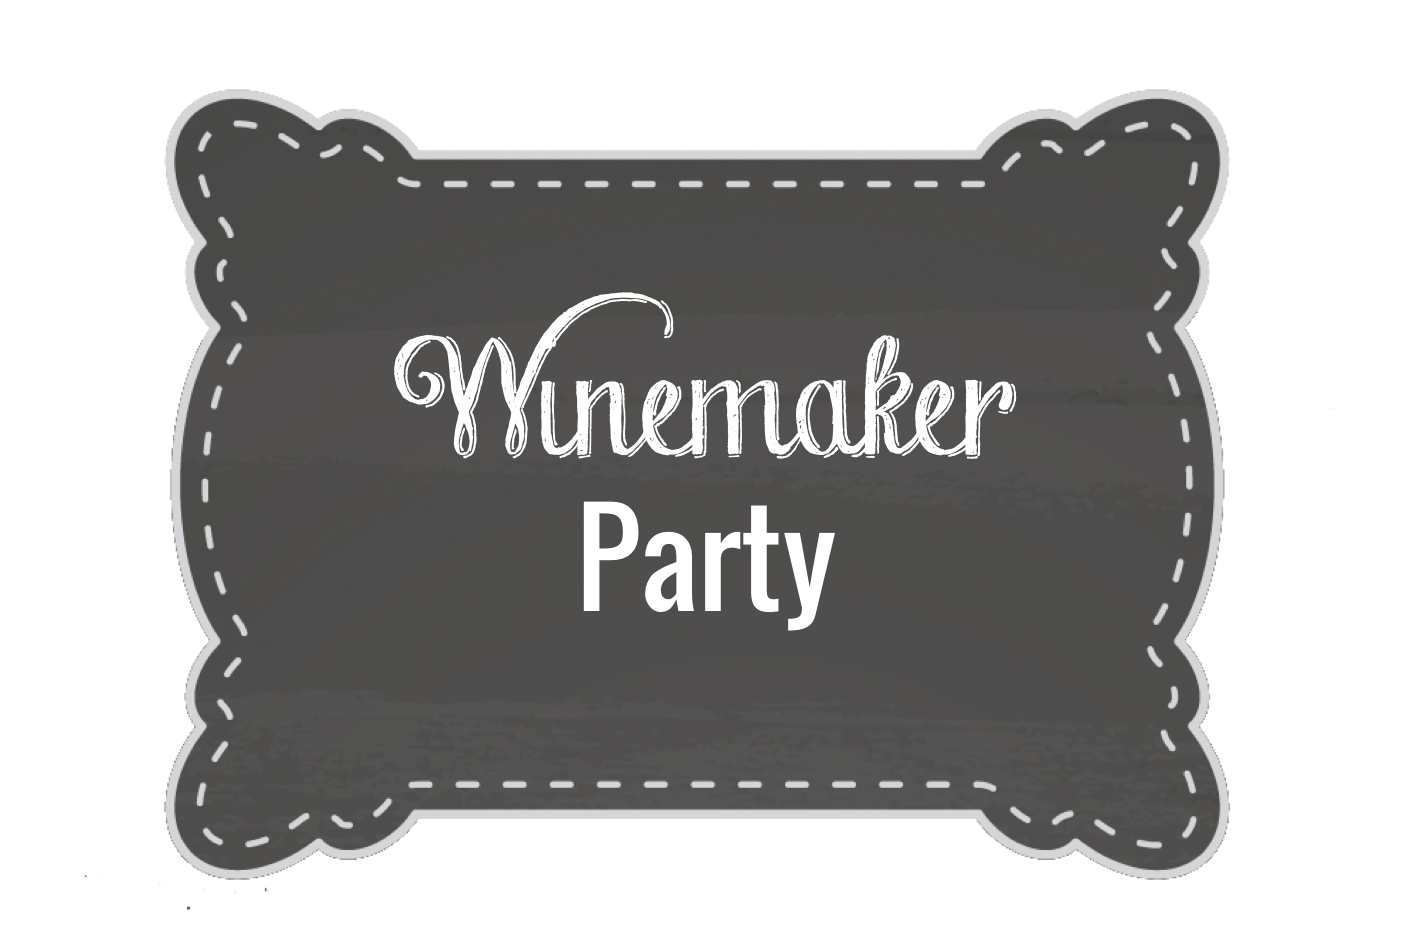 Winemaker Party Product Image